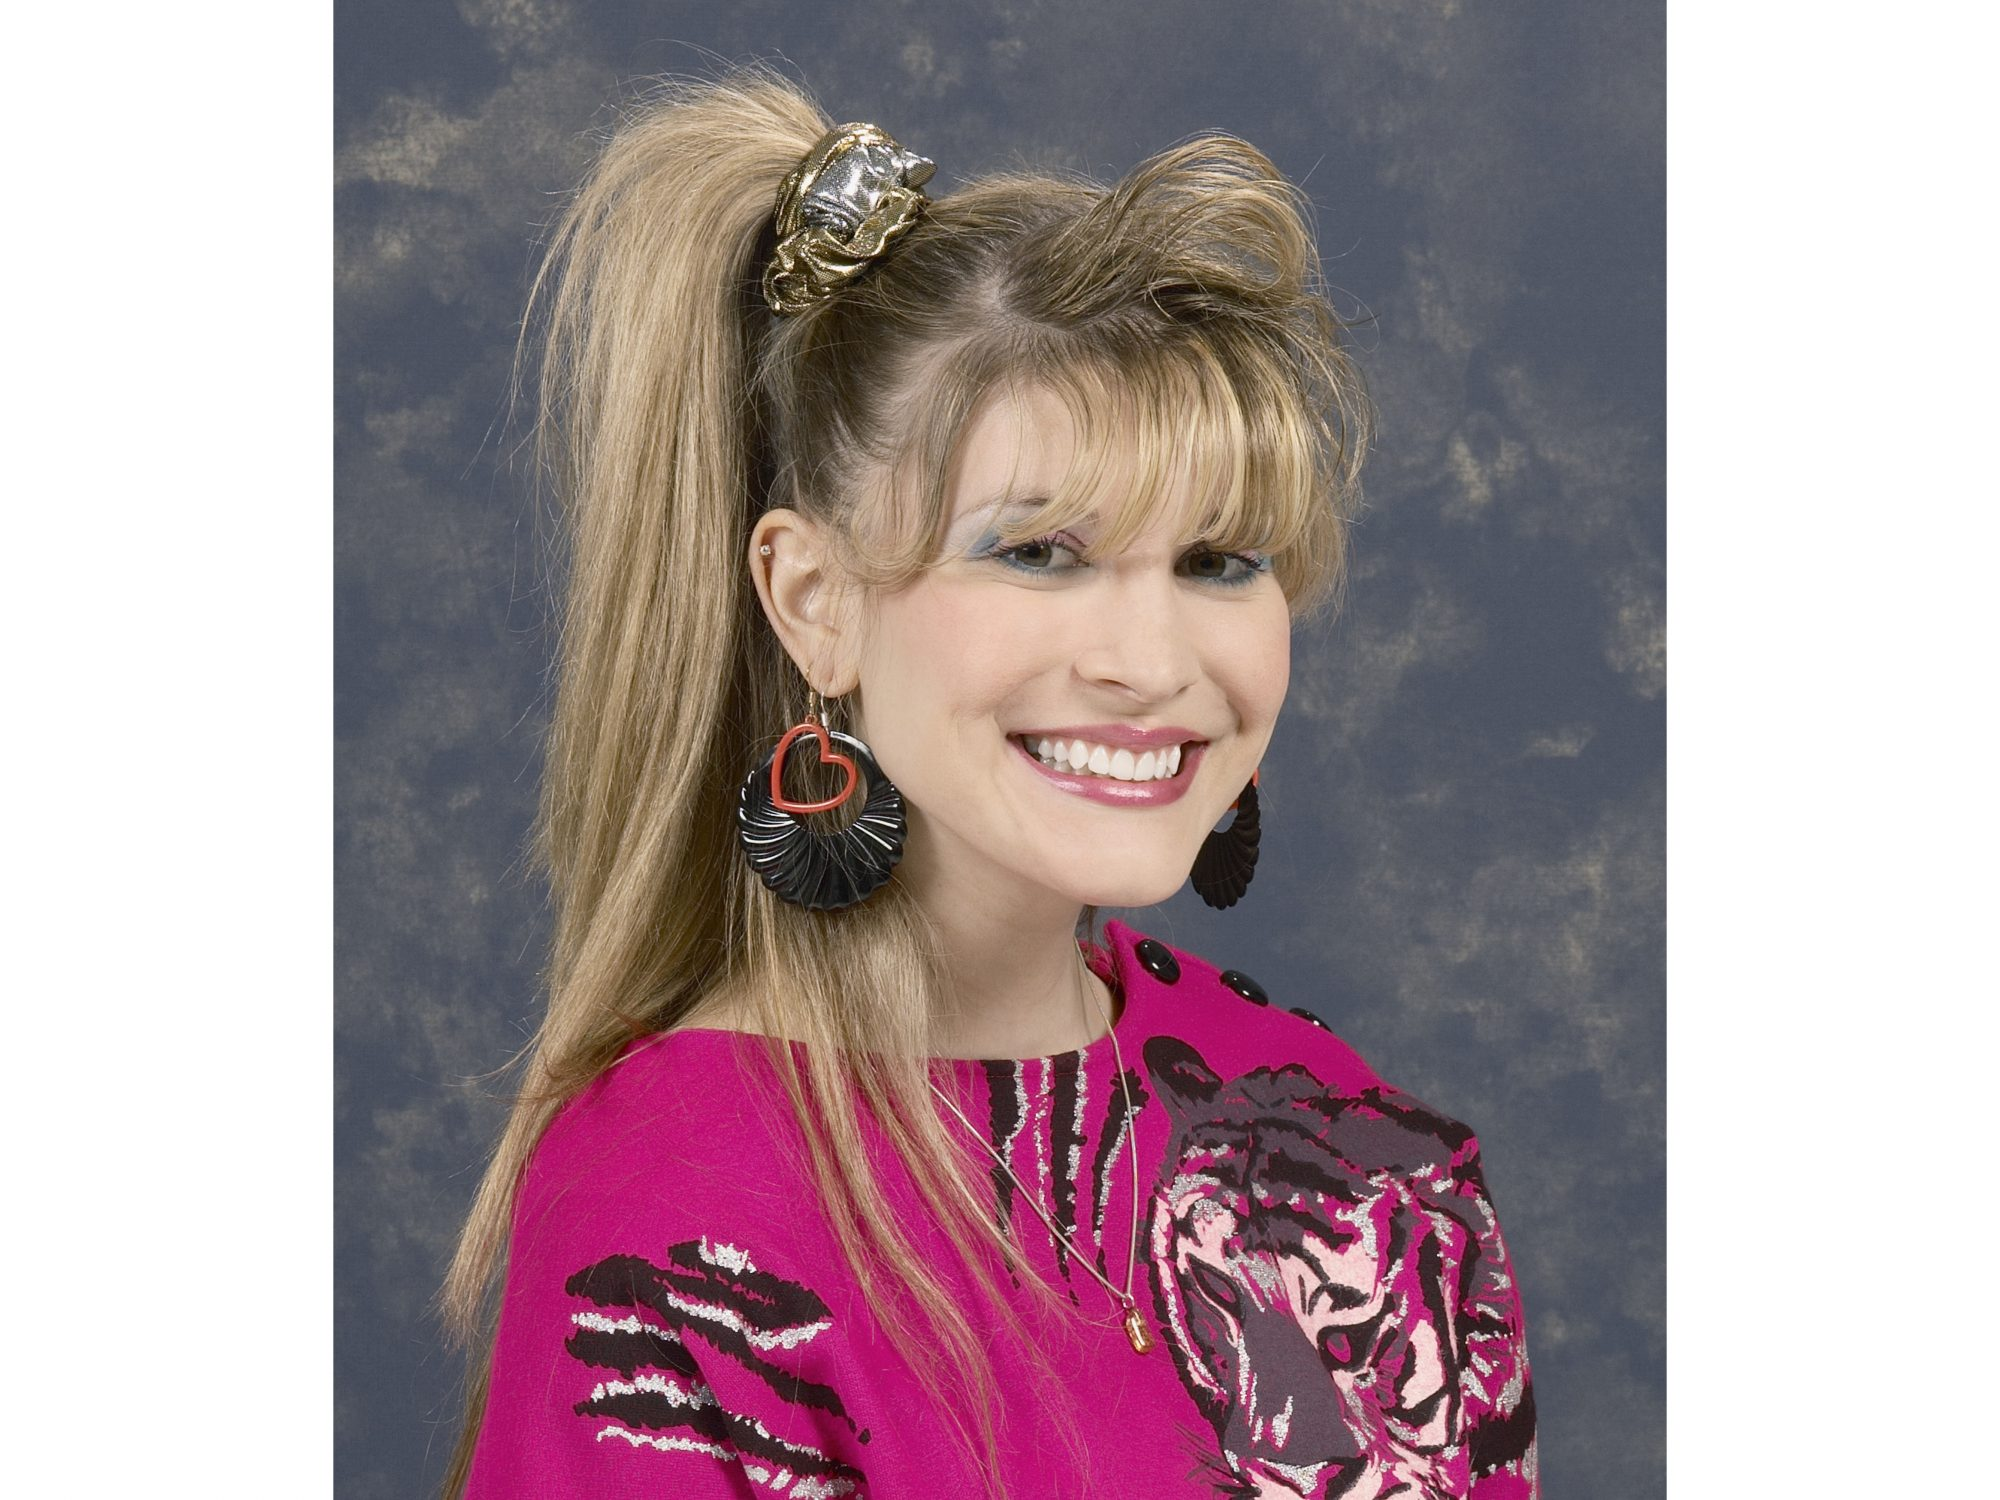 Scrunchie Hair Styles: Are You Ready For The Return Of Scrunchies?